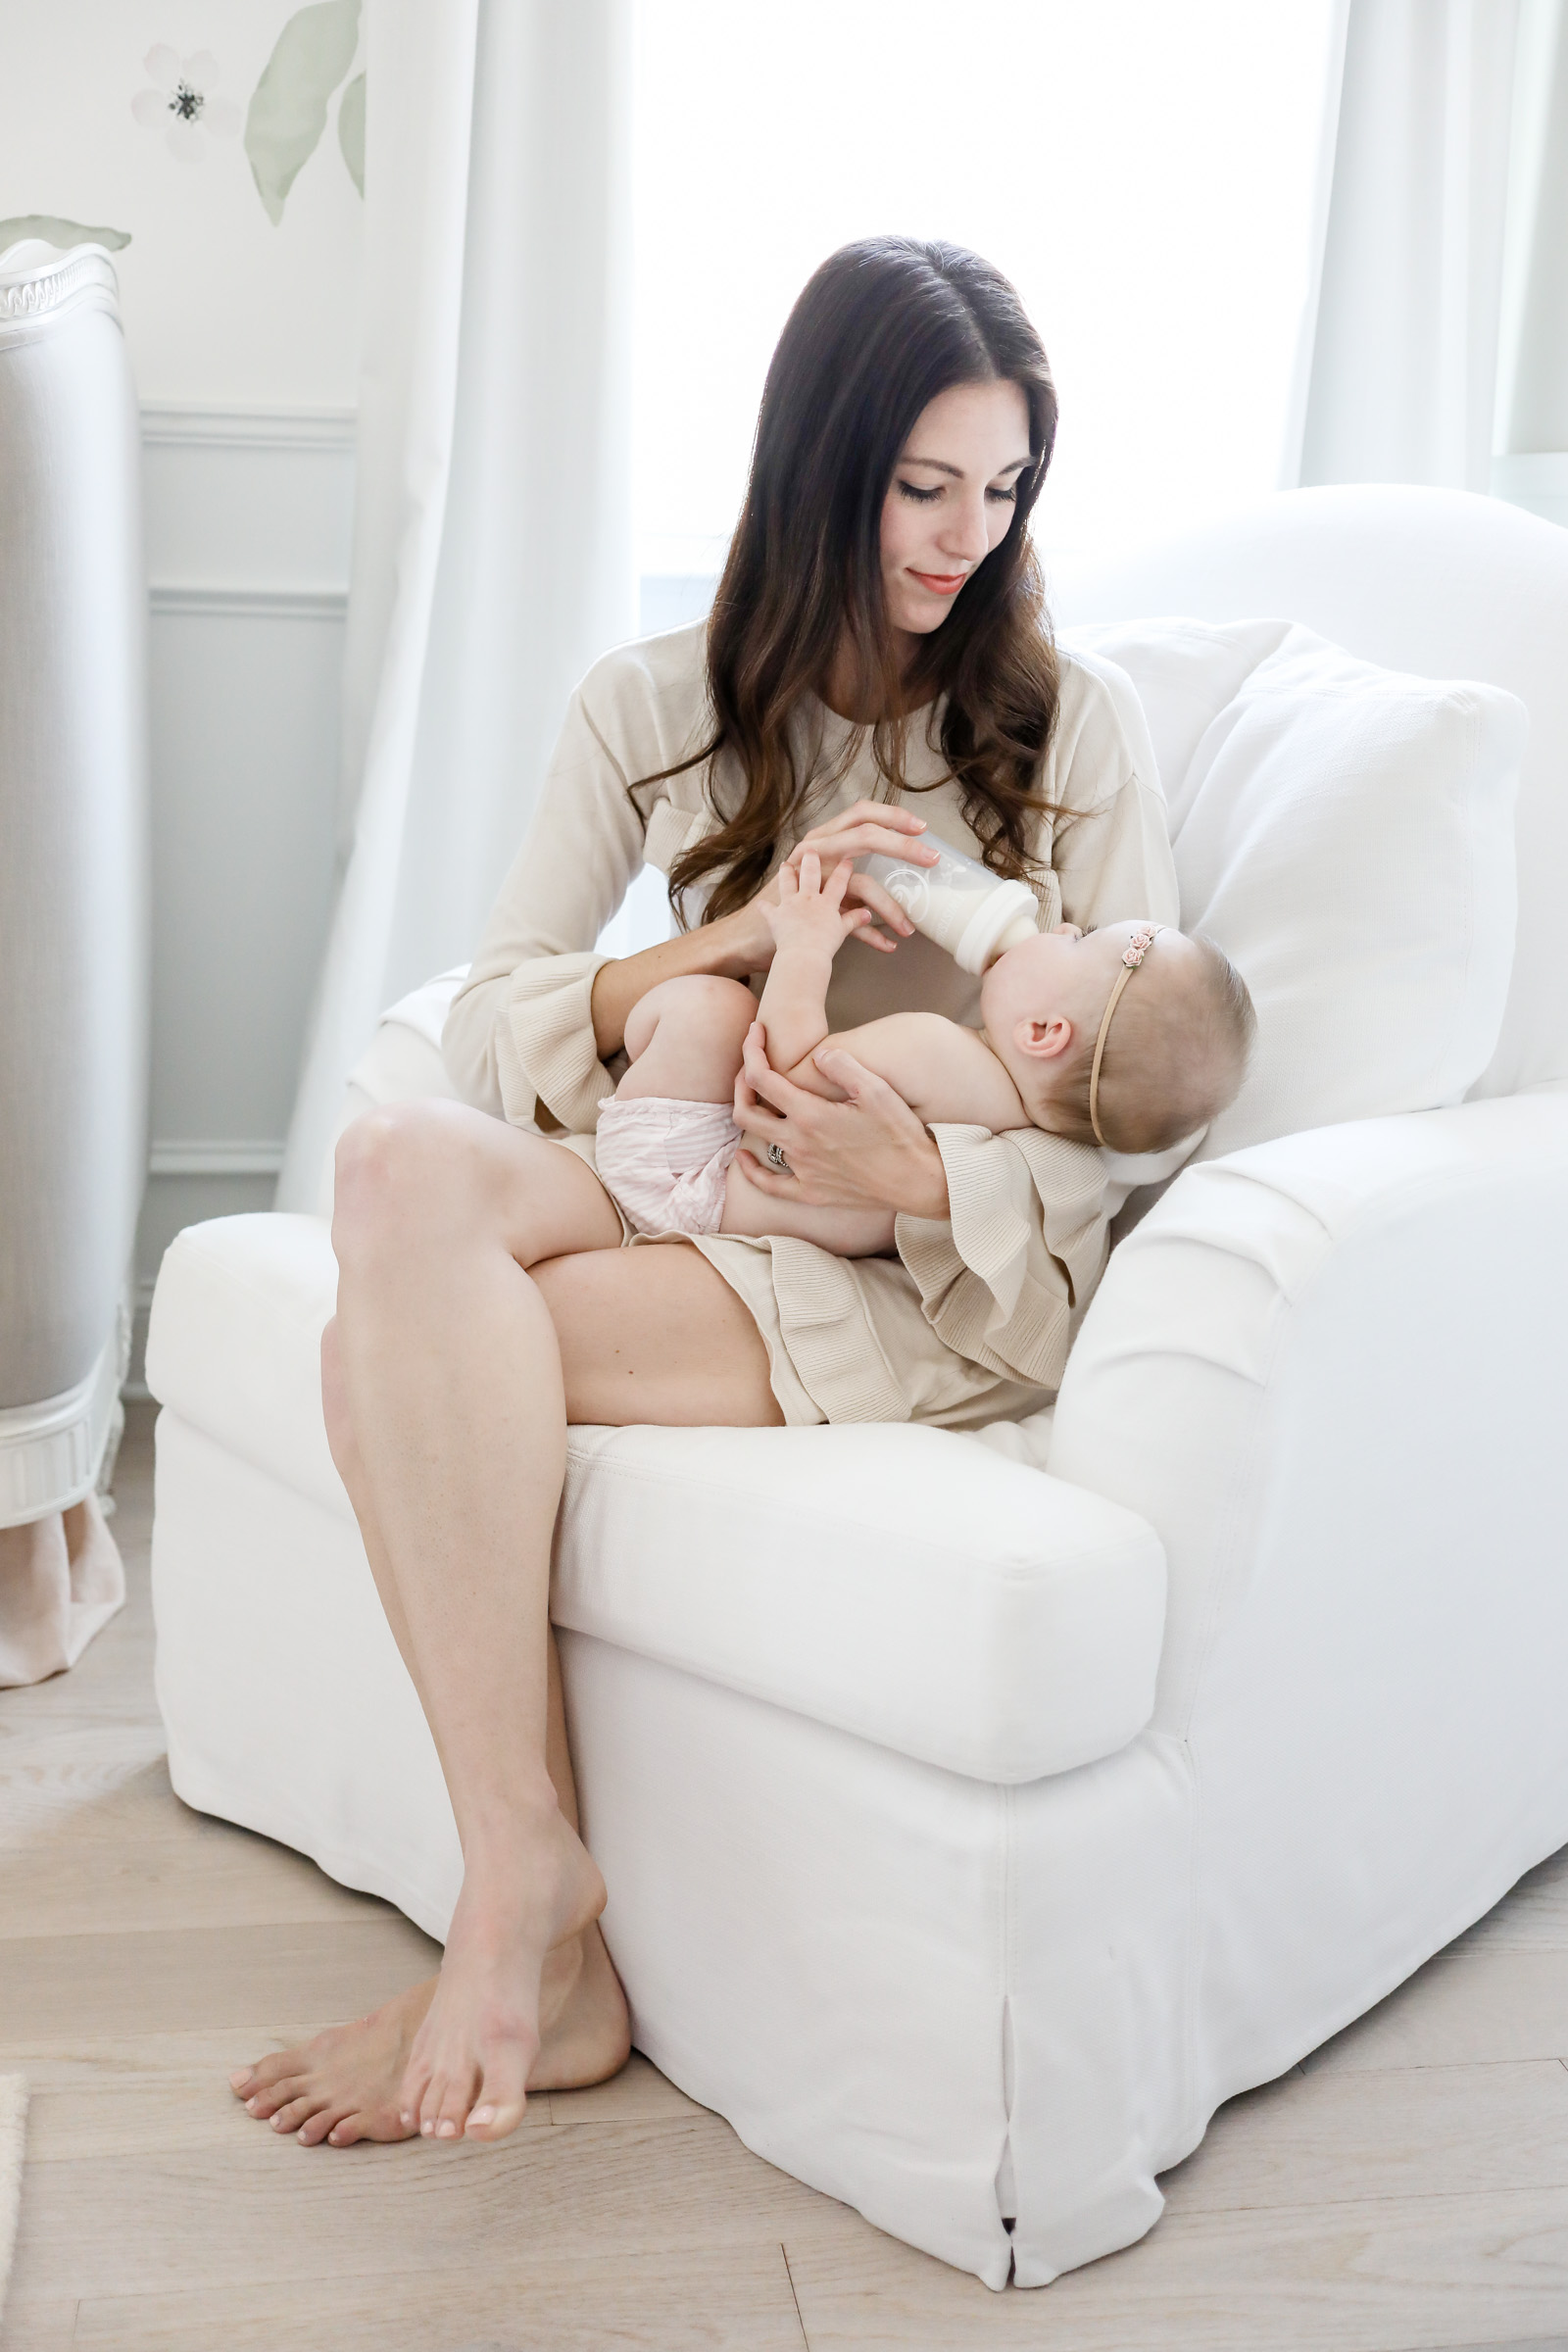 world breastfeeding week | formula fed | breastfeeding struggles | I wanted to breastfeed and it didn't work out | fed is best